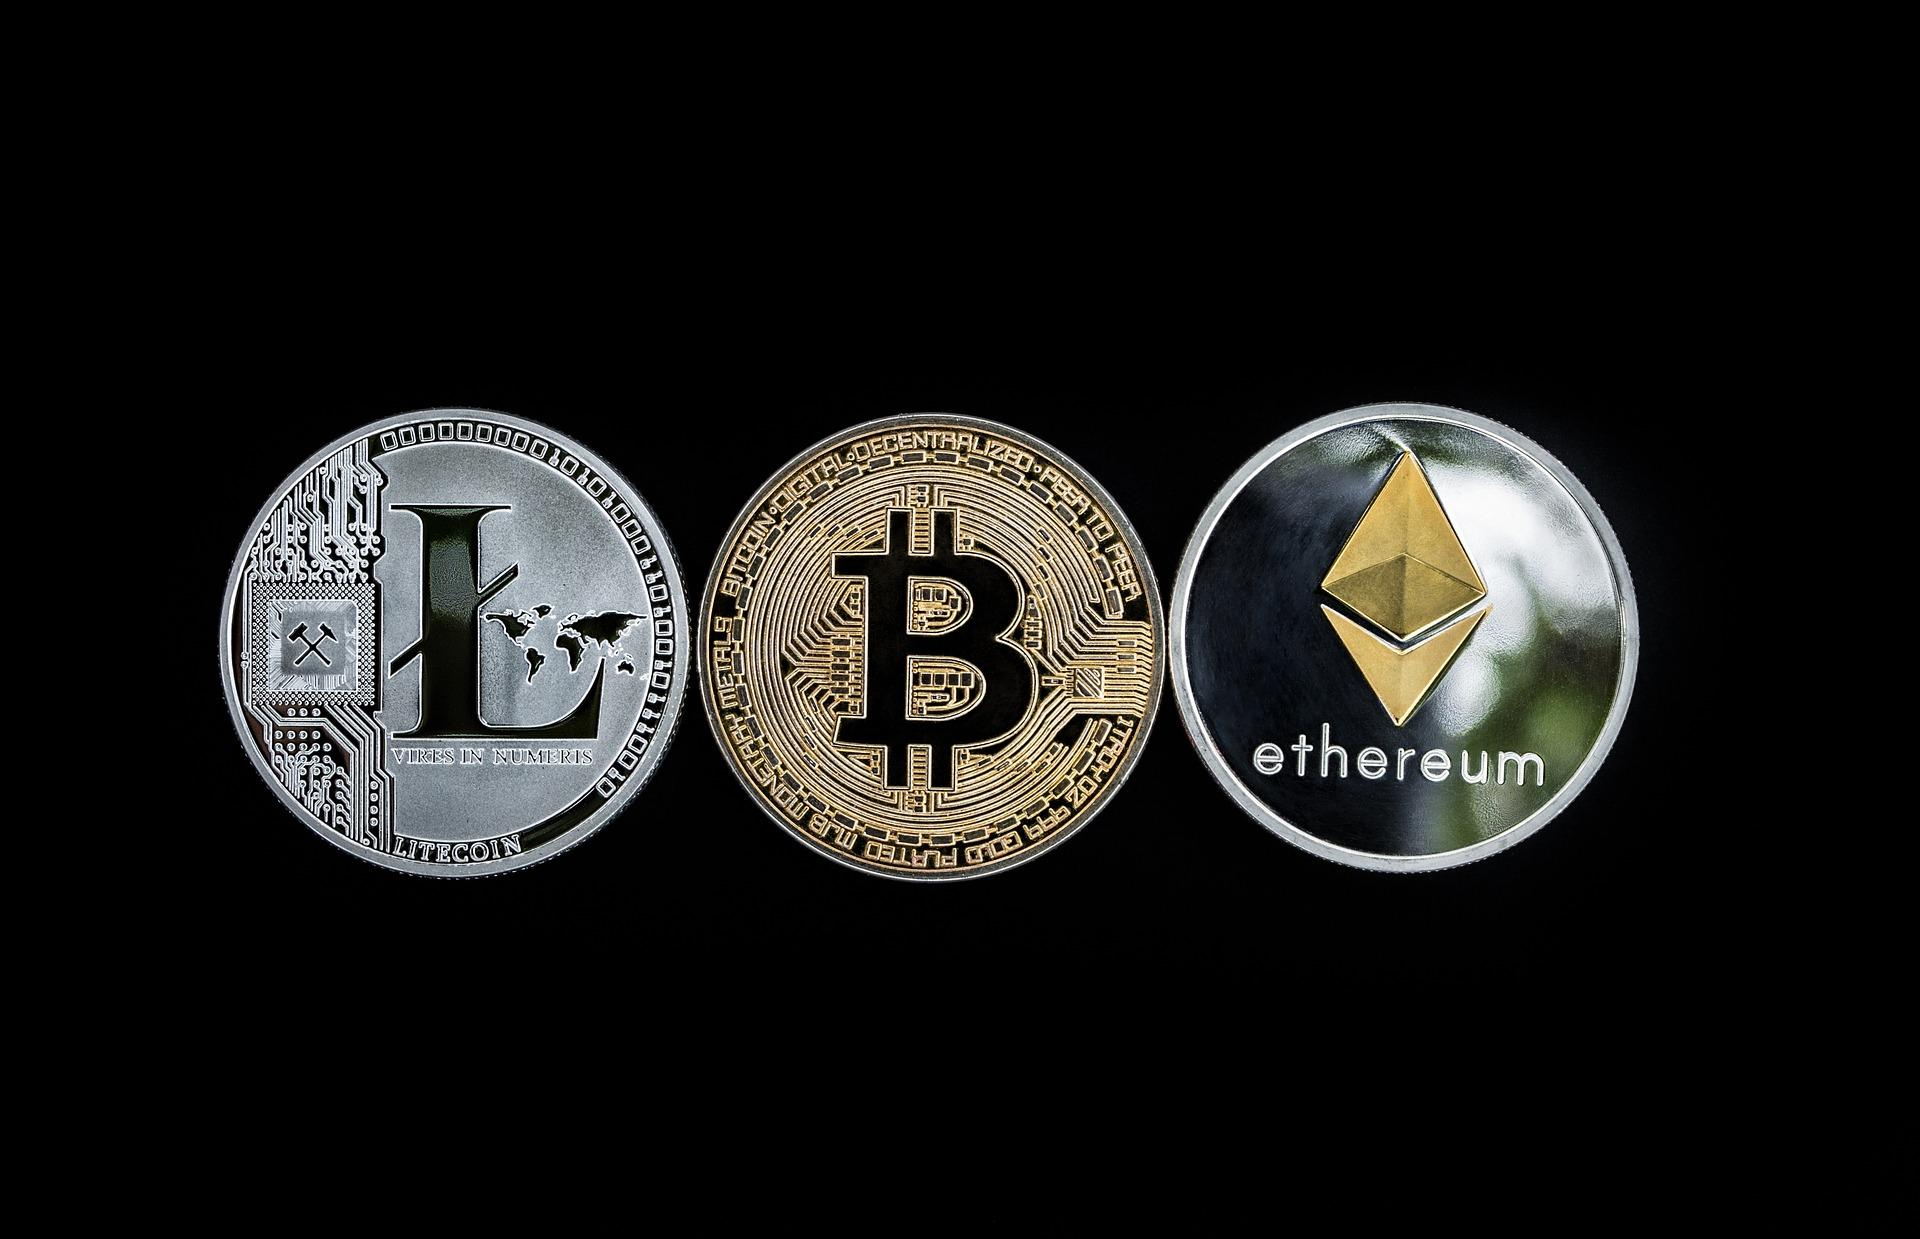 Bitcoin, Litecoin, and Ethereum coins